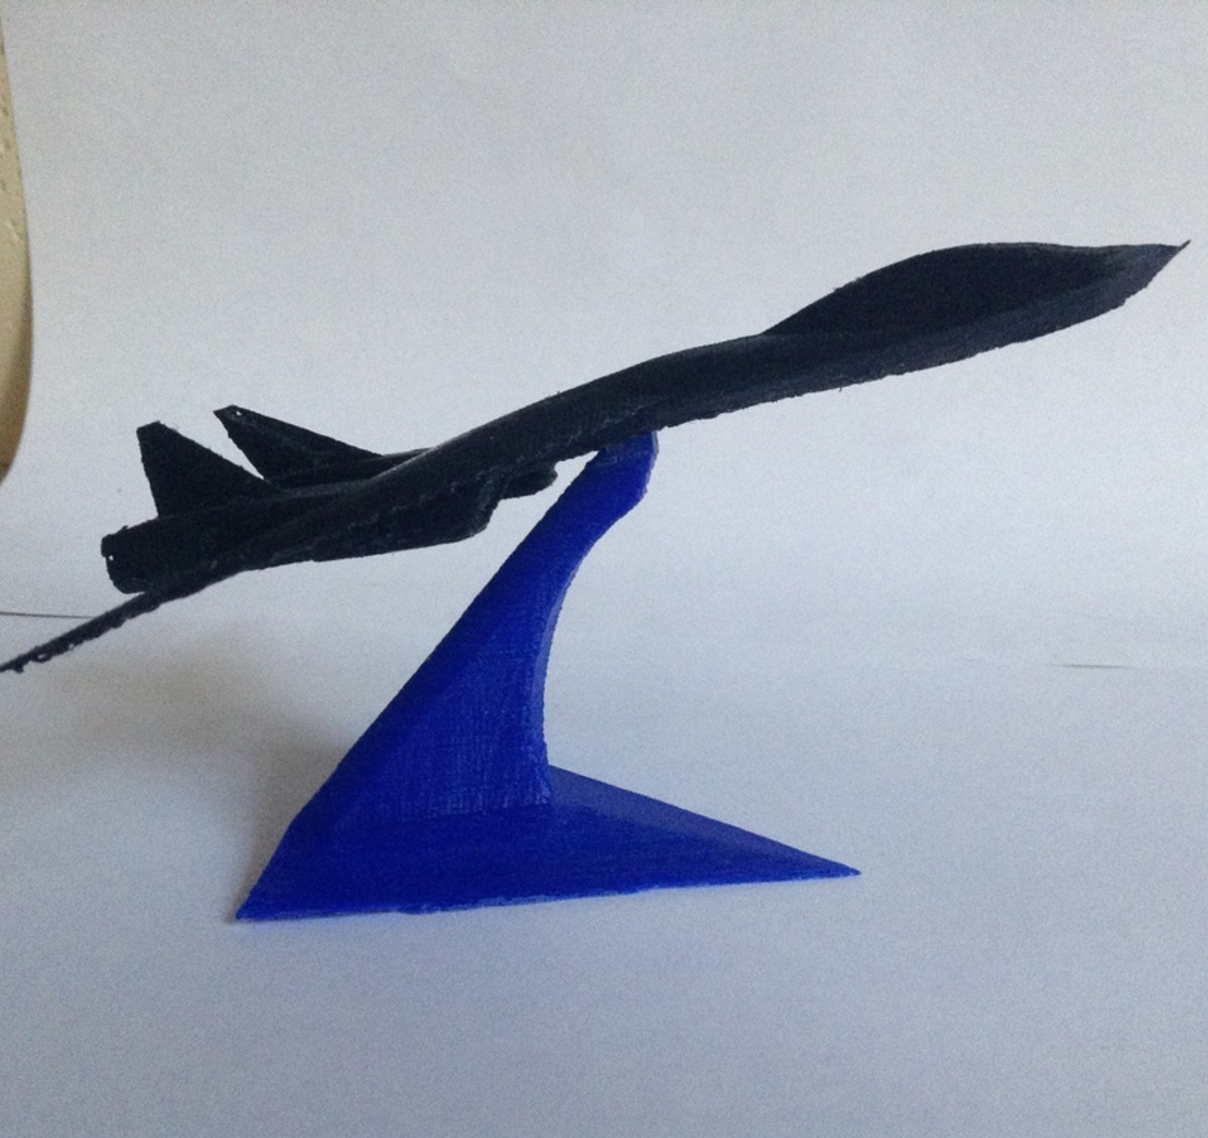 Capture d'écran 2017-08-28 à 16.53.17.png Download free STL file Starfighters with a display stand • 3D print object, morrisblue